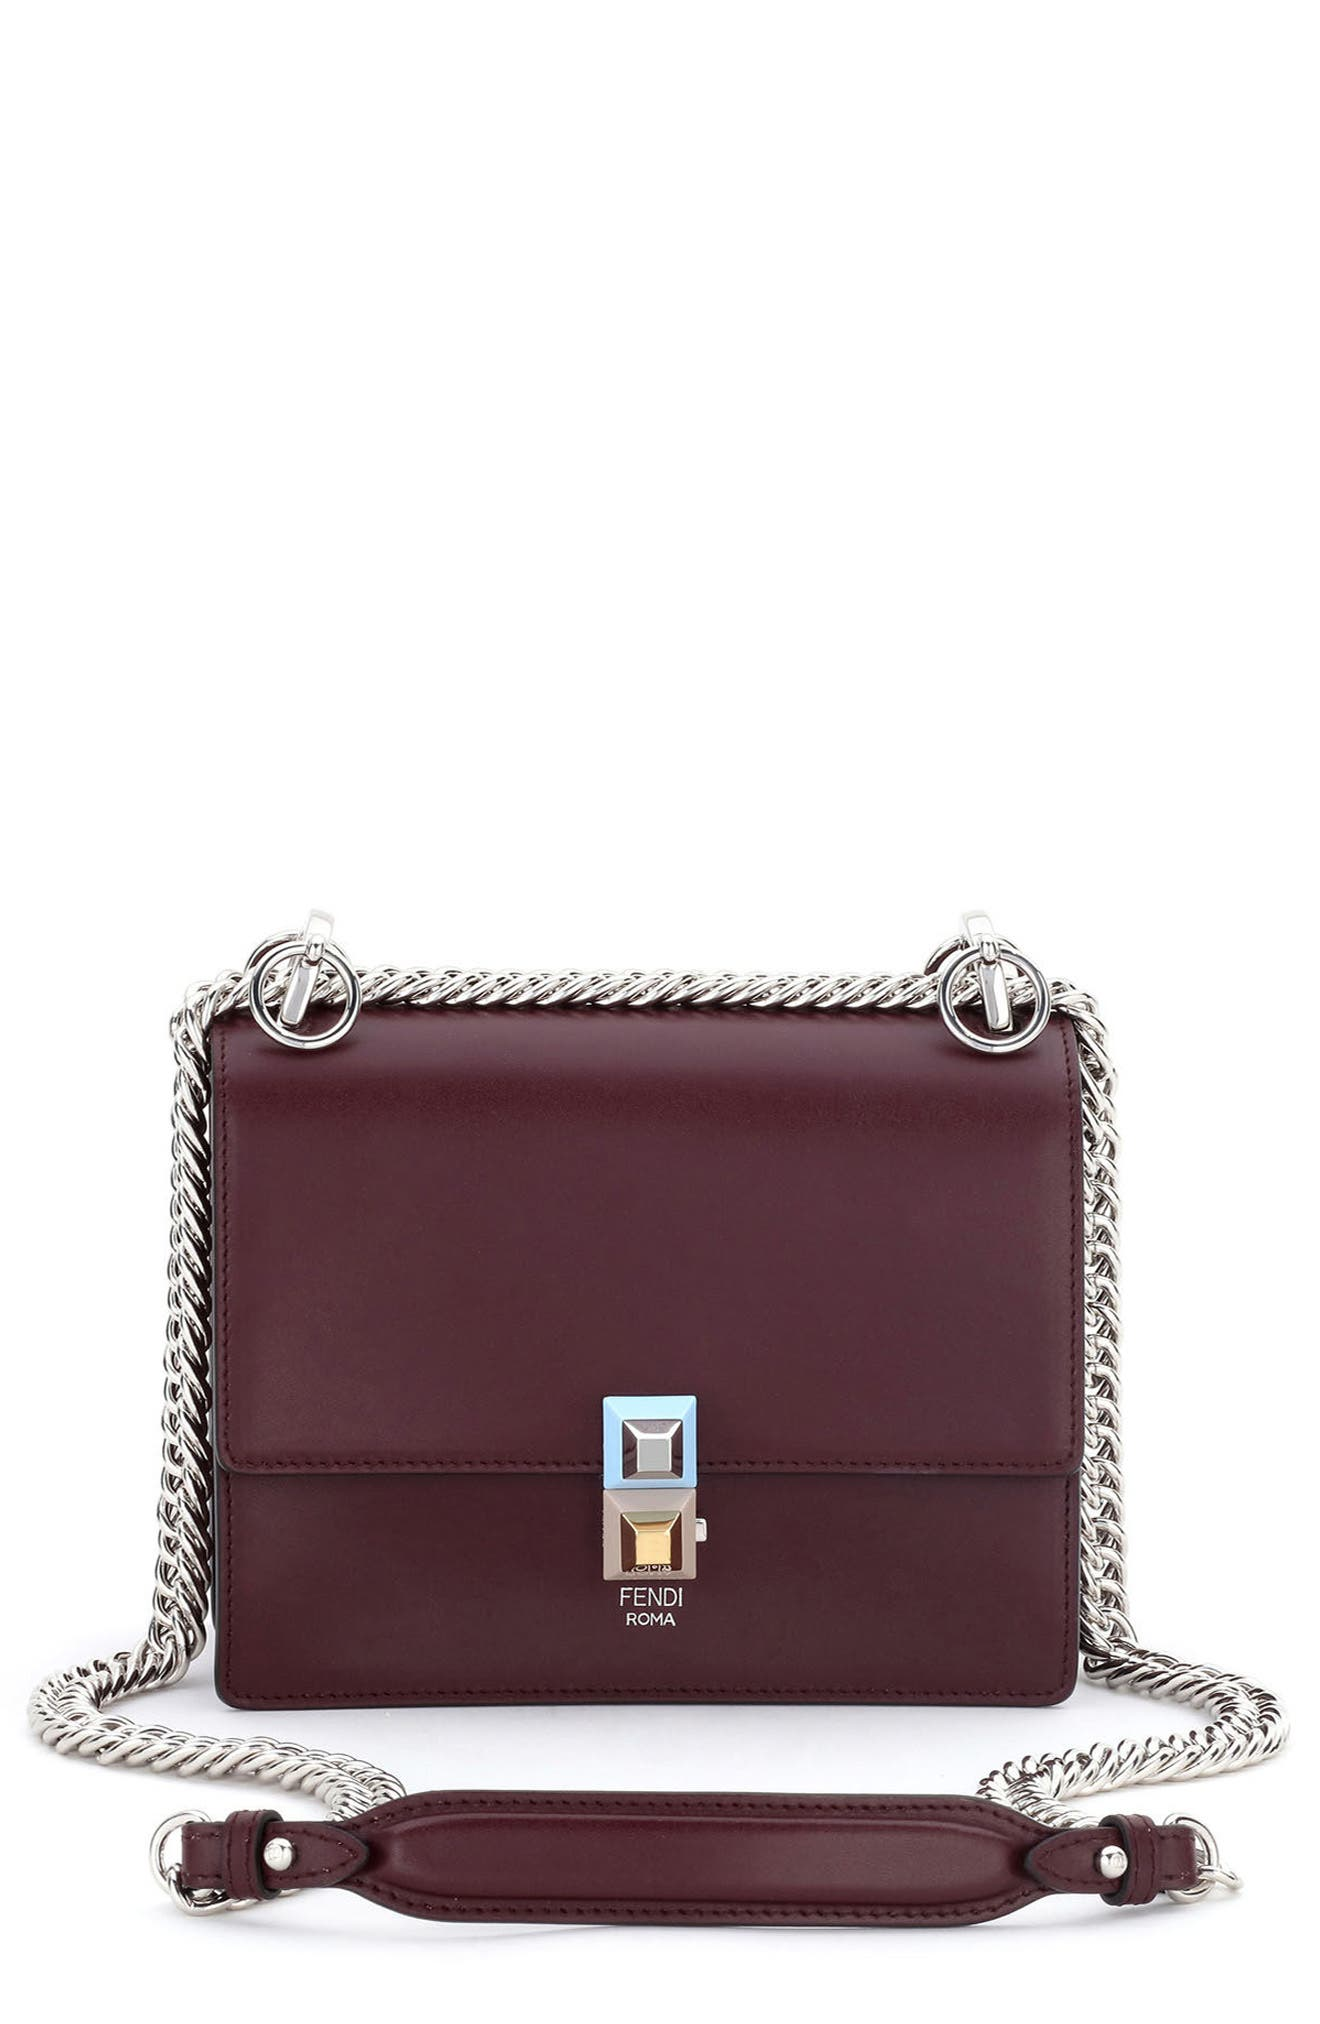 ccb465b8fe4e Fendi All Women